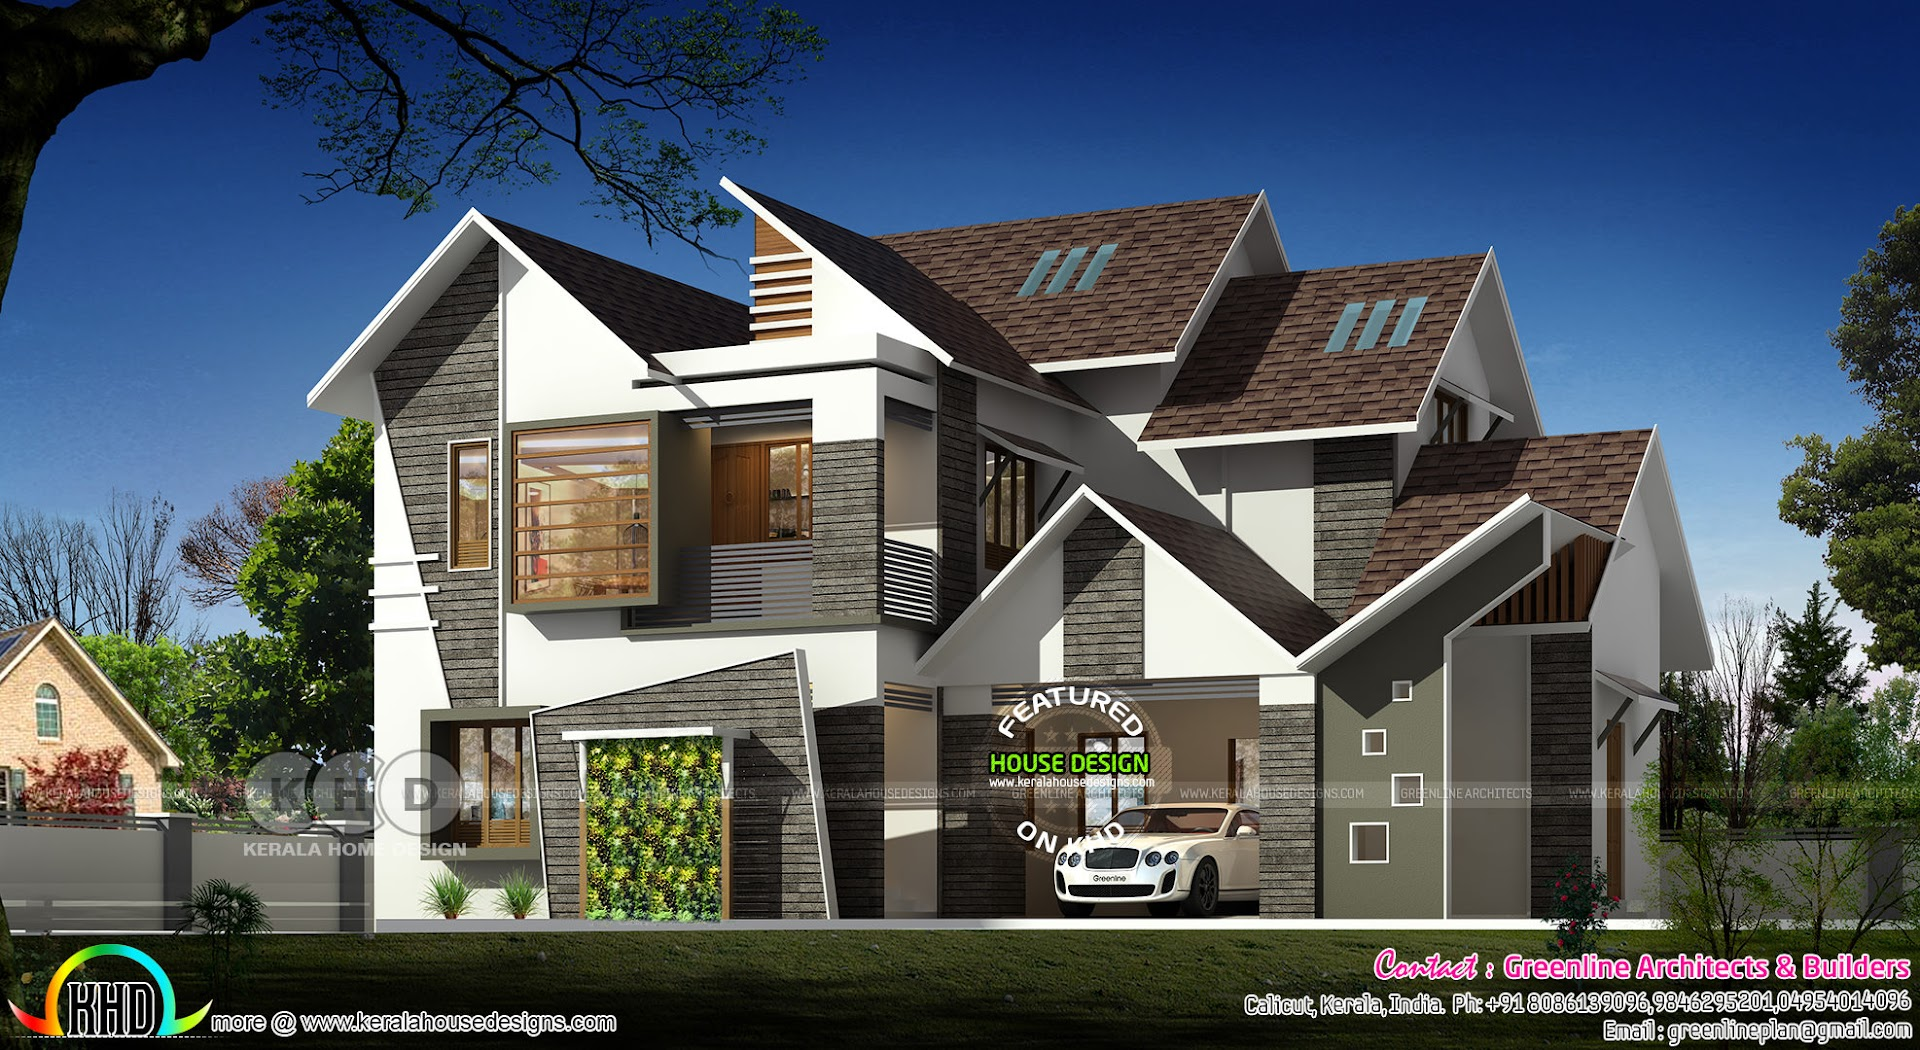 3333 Square Feet Modern Sloping Roof House Kerala Home Design And Floor Plans 8000 Houses